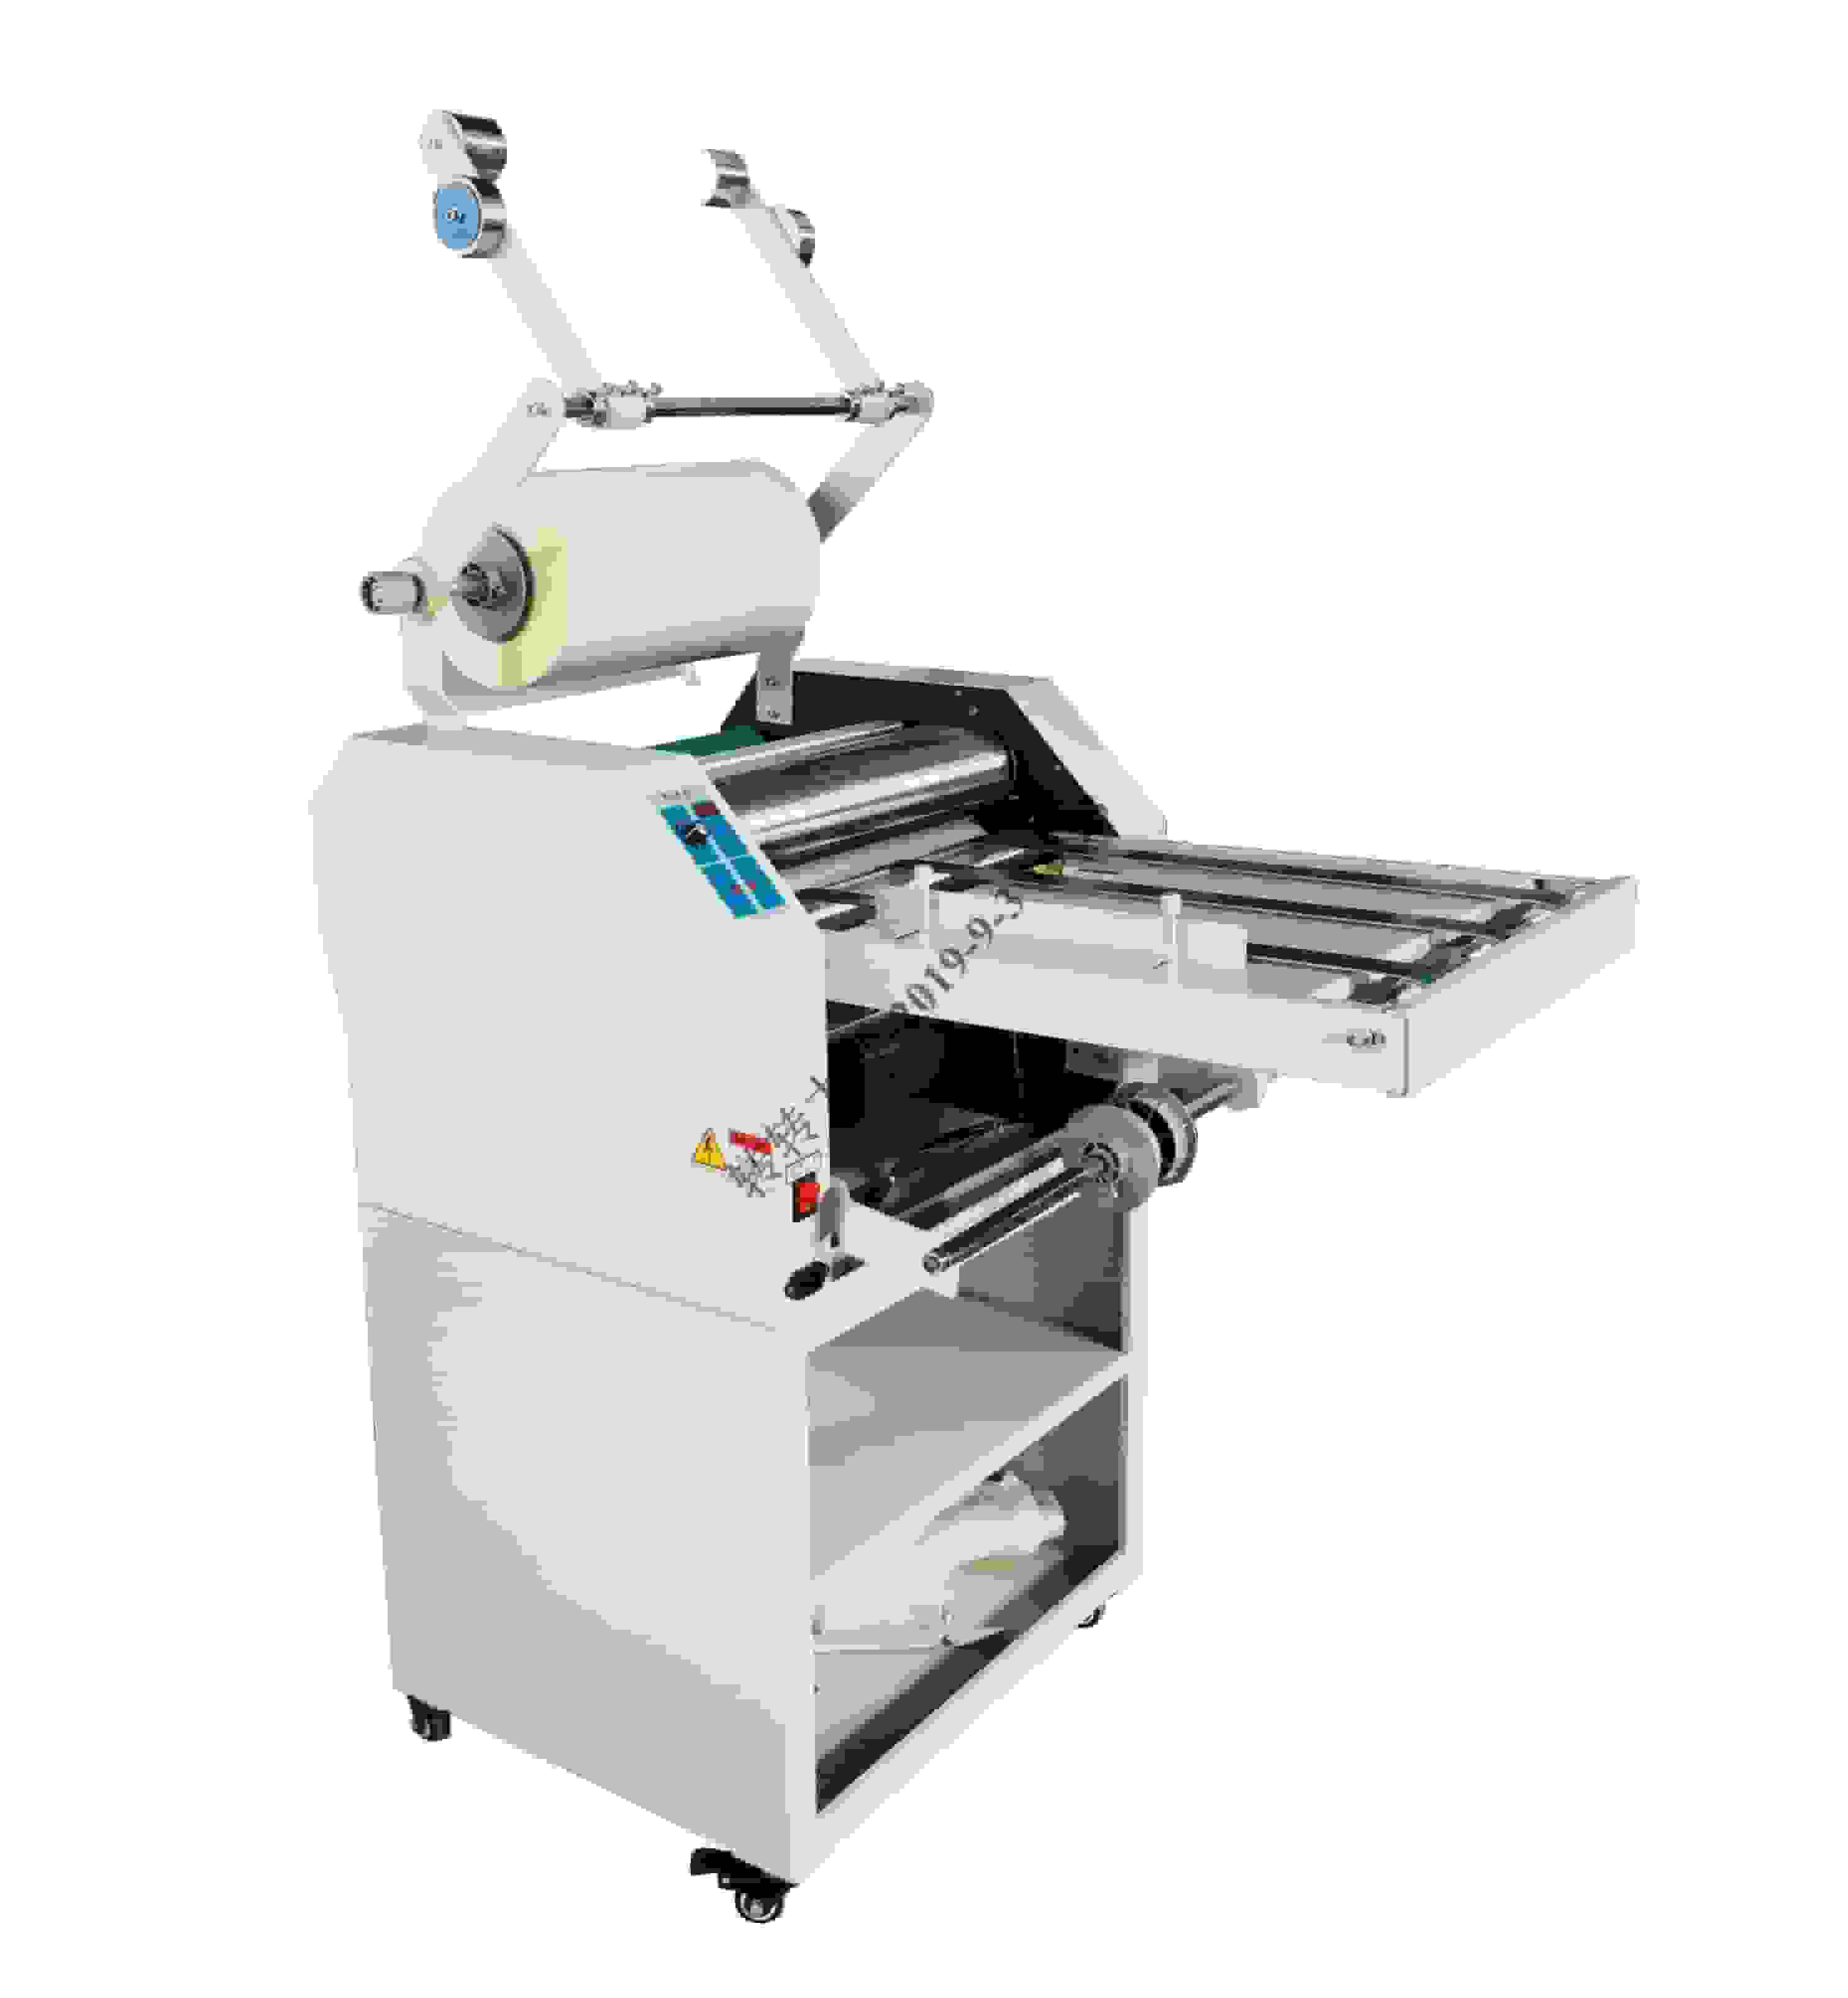 1100mm hot and cold roll automatic thermal laminating machine